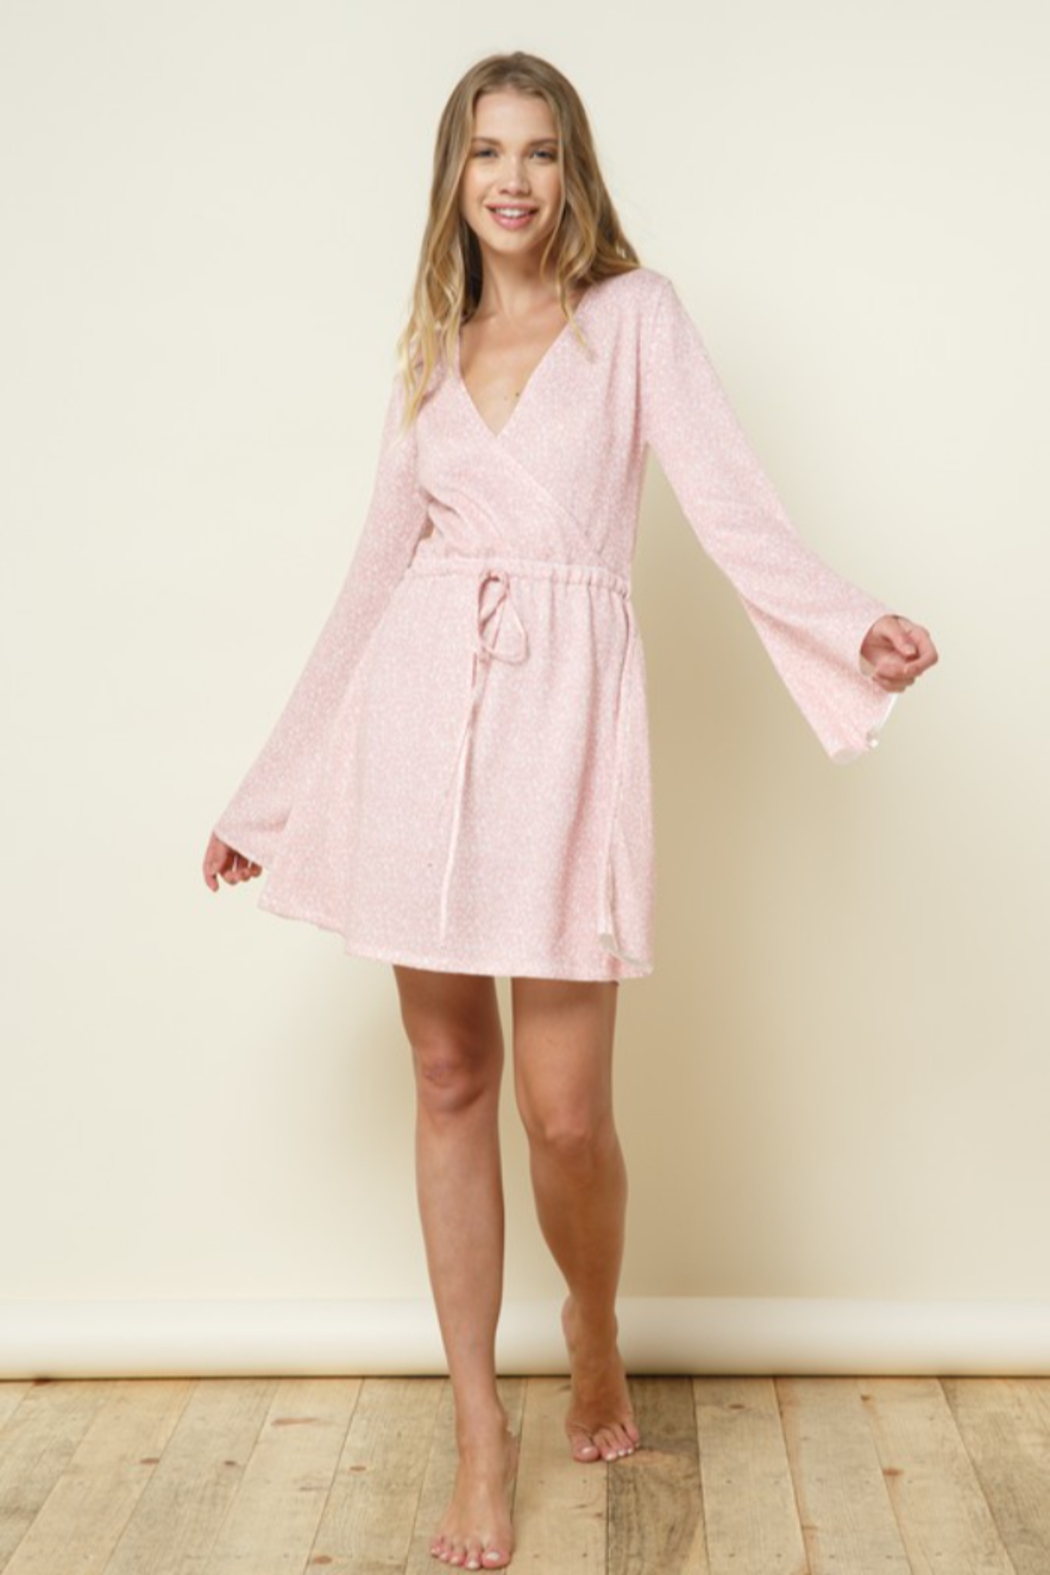 Late Night Apparel Rose Thin Knitted Printed Bell Sleeve Mini Dress - Main Image